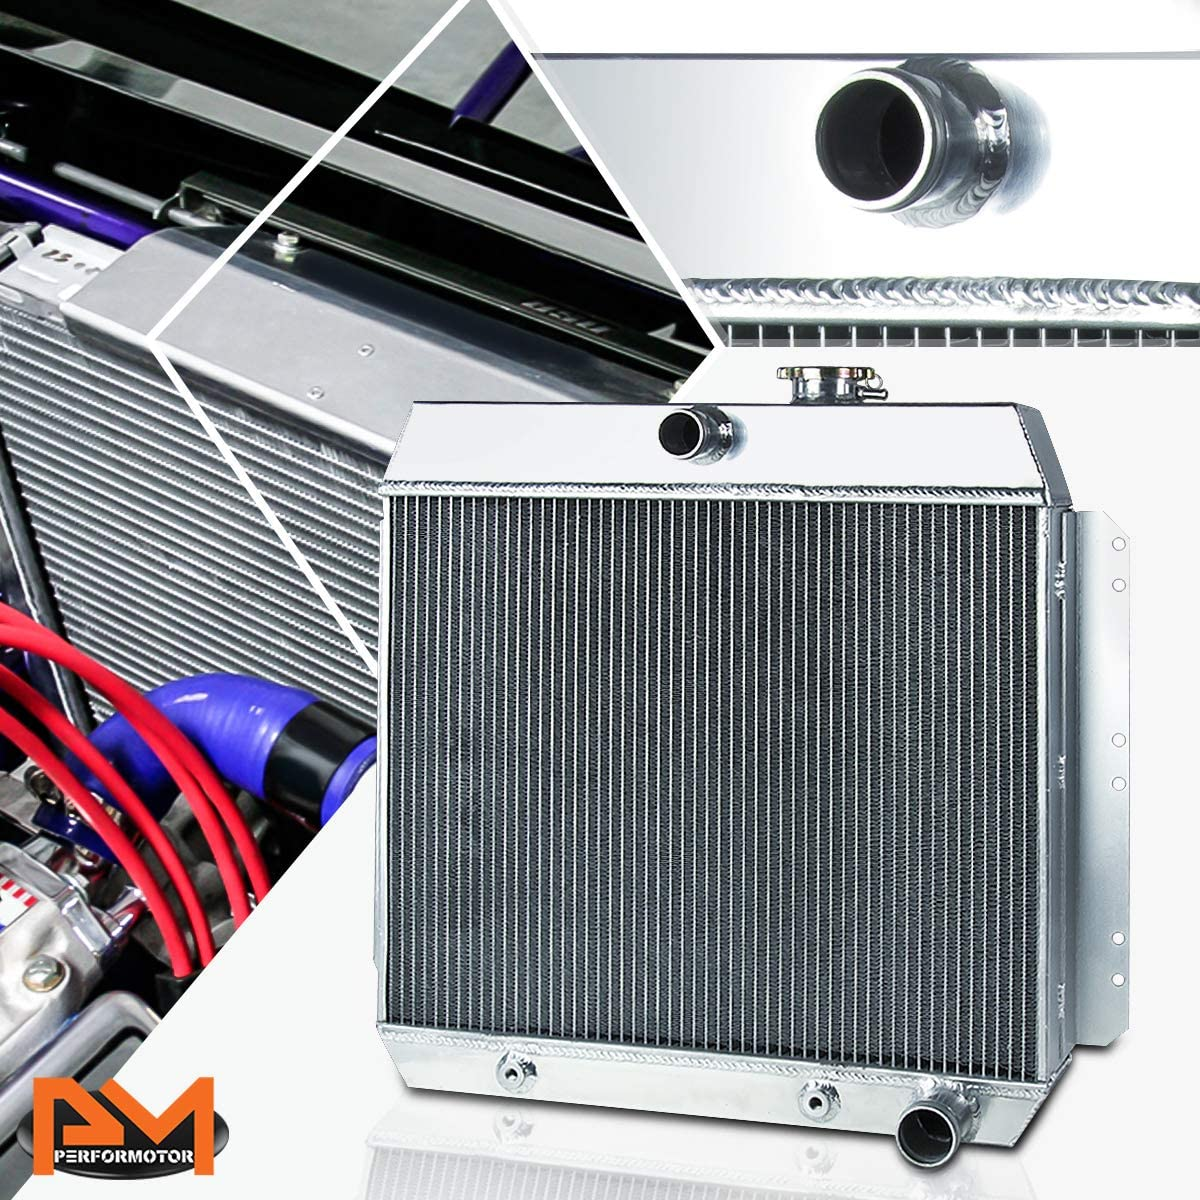 3-Row Aluminum San Antonio Mall Cooling Sale item Radiator Compatible with Air Chevy Fl Bel